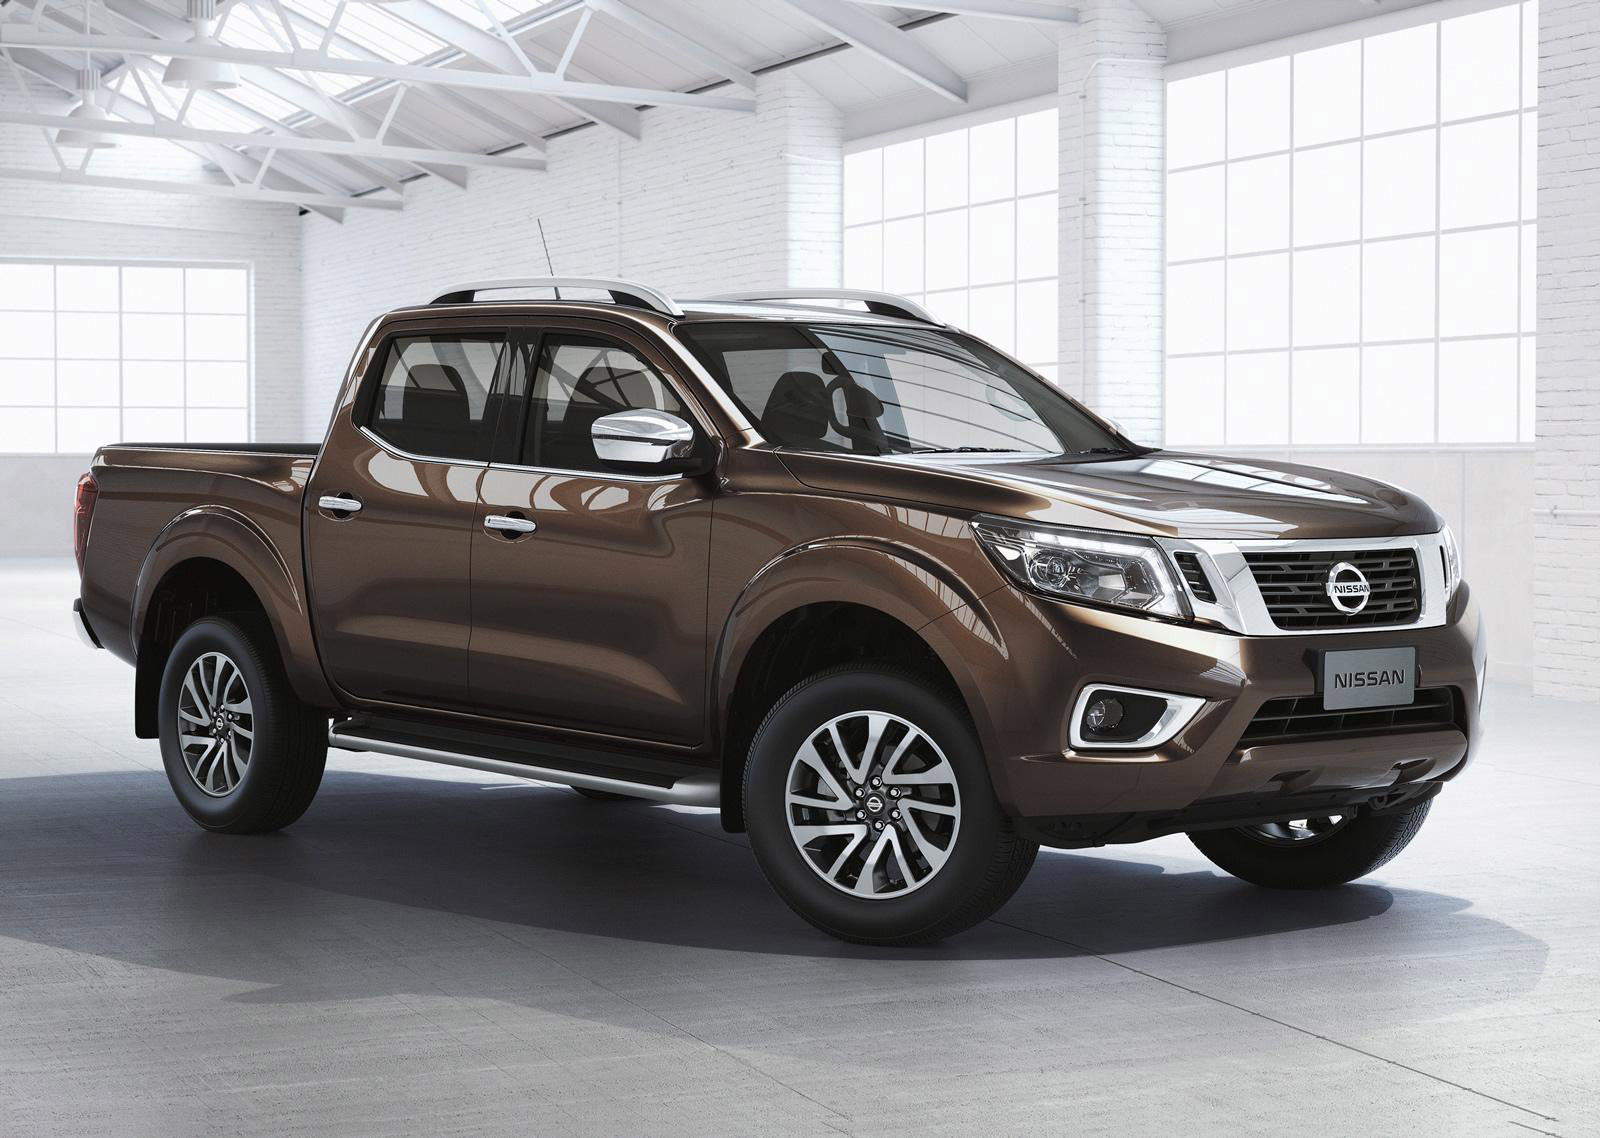 Nissan adds more features to 2015 Navara